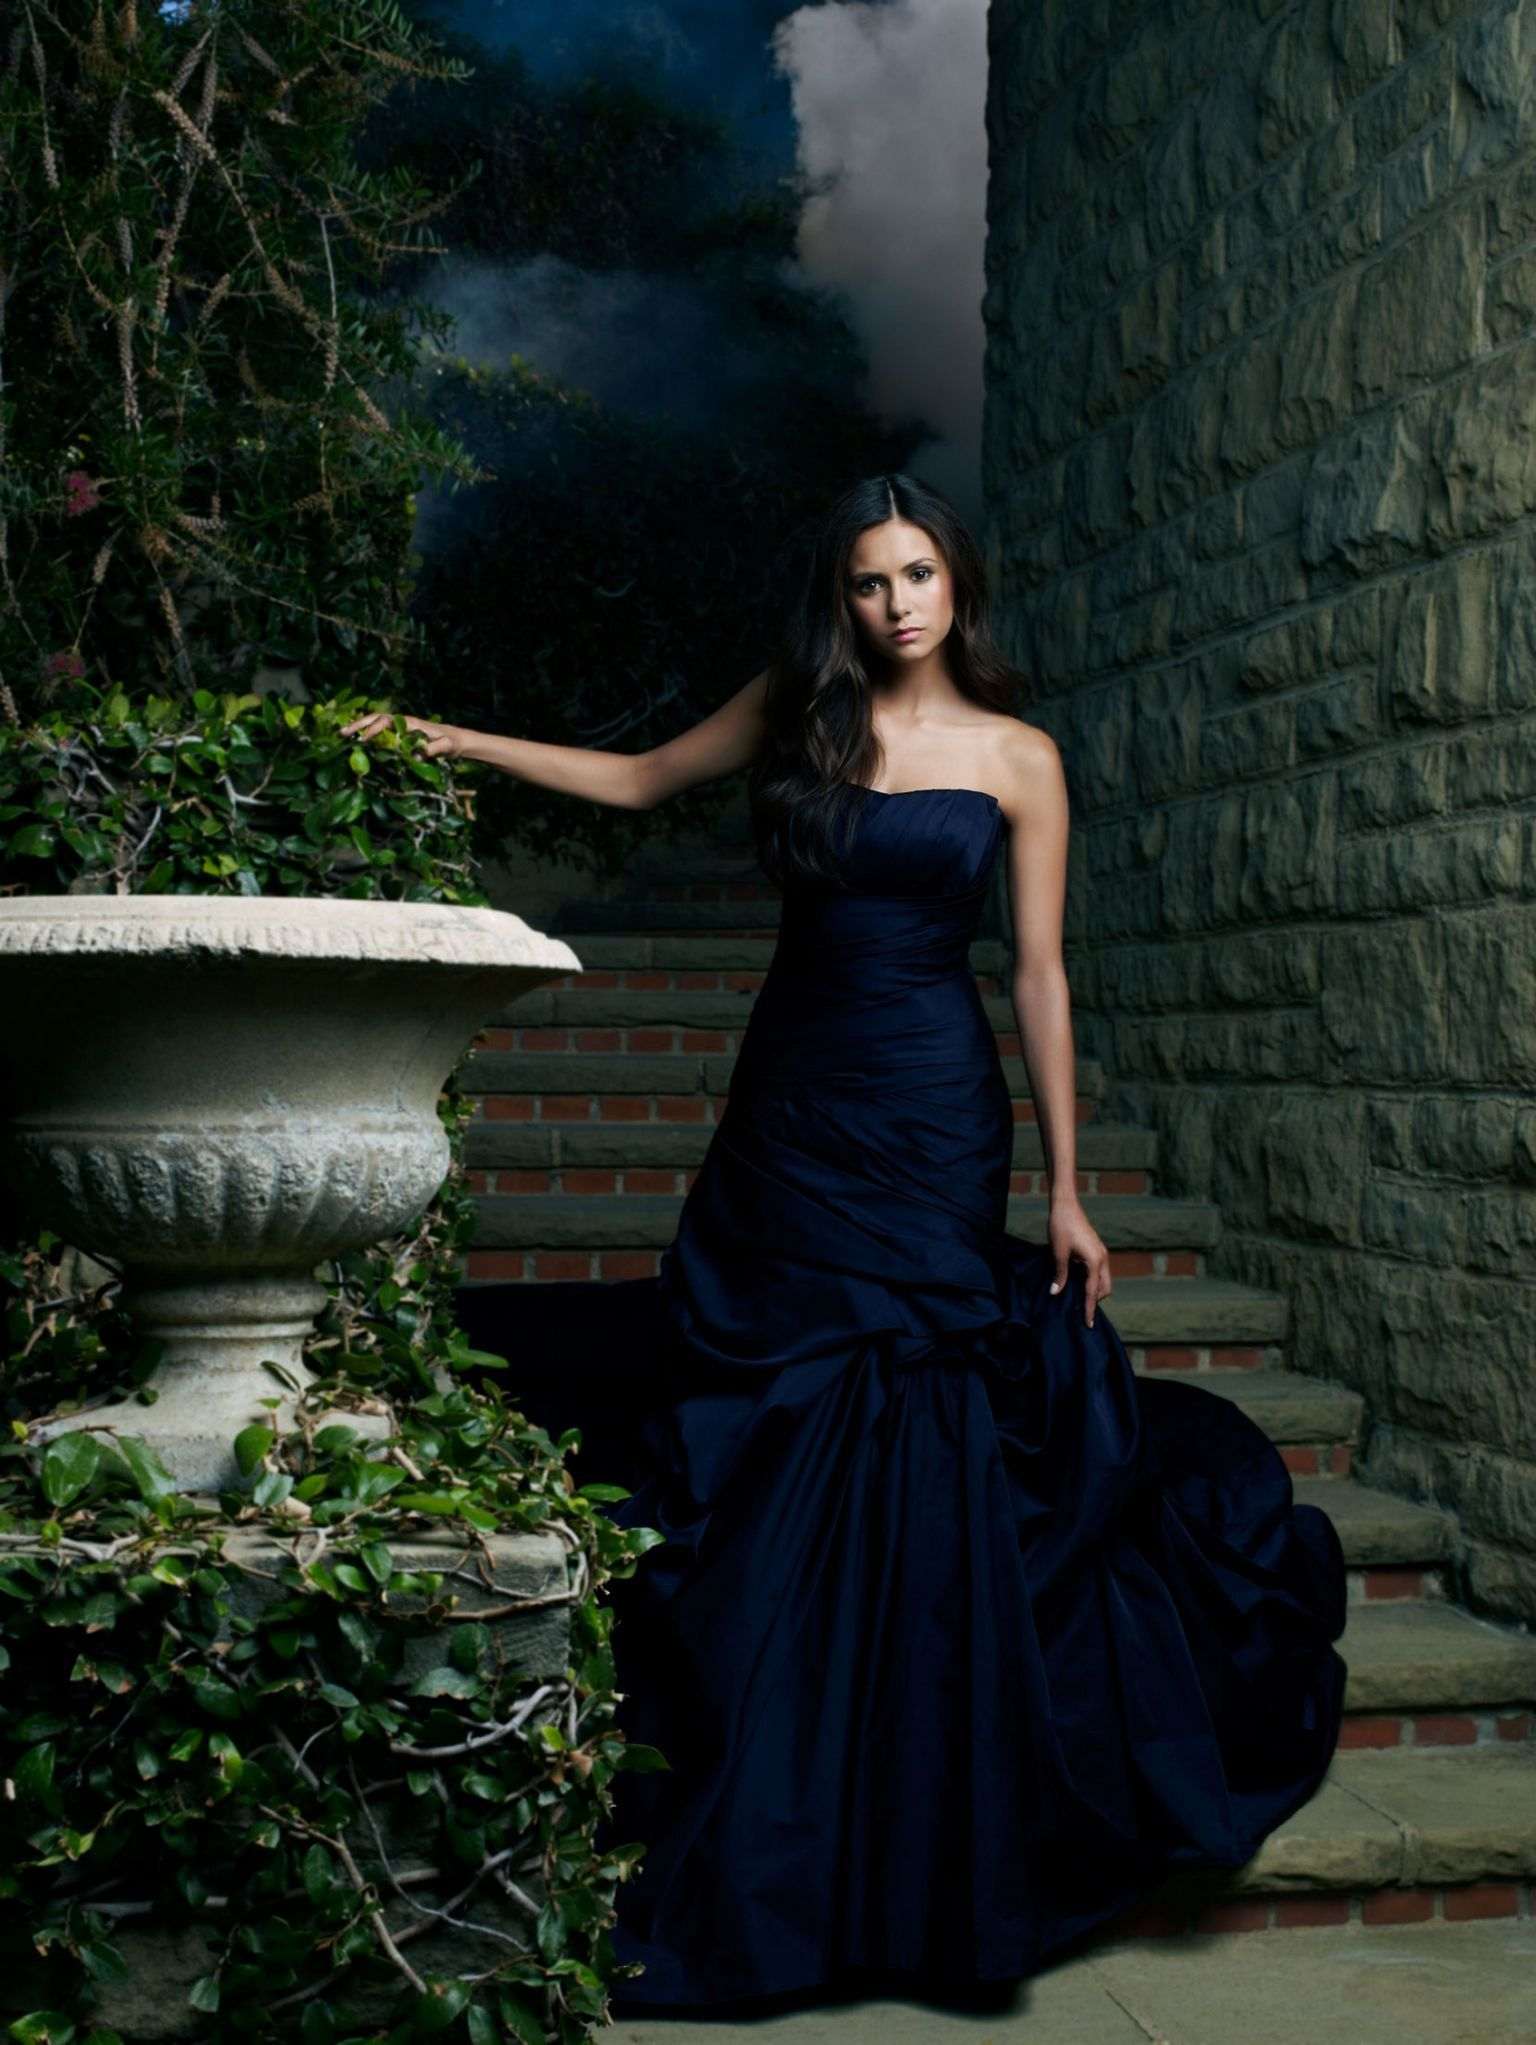 The Vampire Diaries Pictured: Nina Dobrev as Elena Photo Credit: Andrew Eccles / The CW © 2009 The CW Network, LLC. All Rights Reserved.